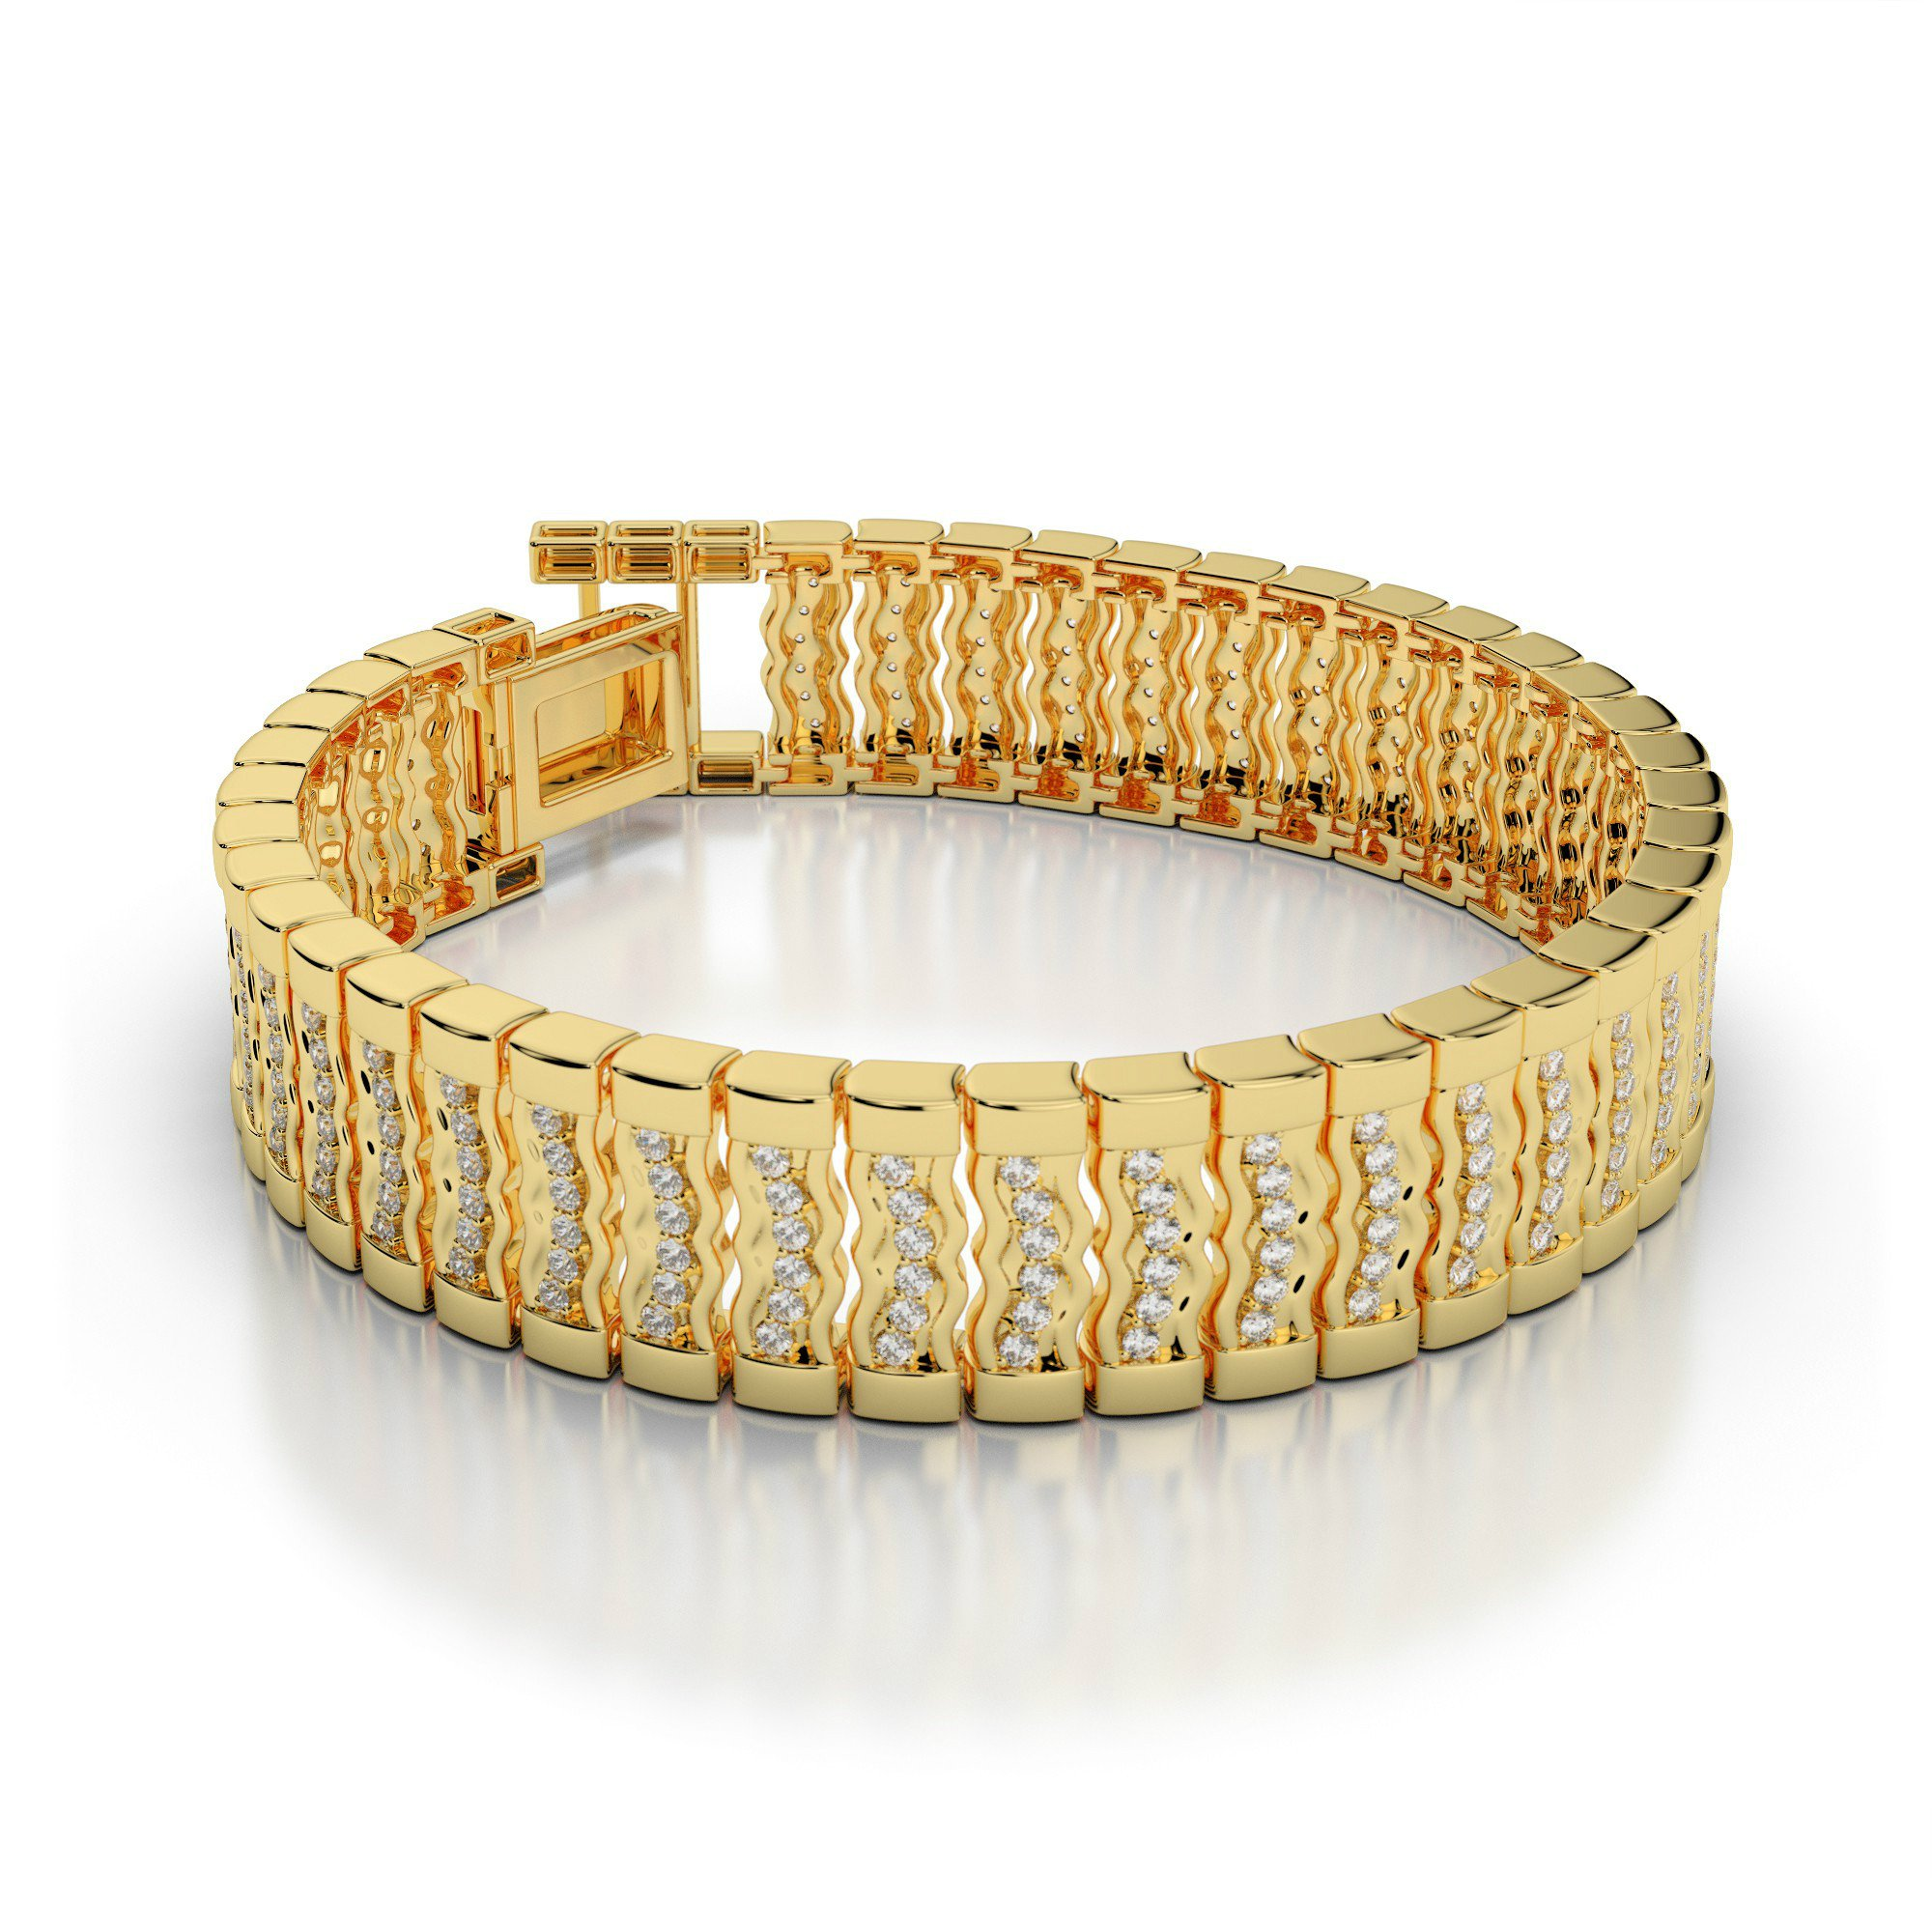 3.00 Carat Diamond Wavy Link Men's Bracelet